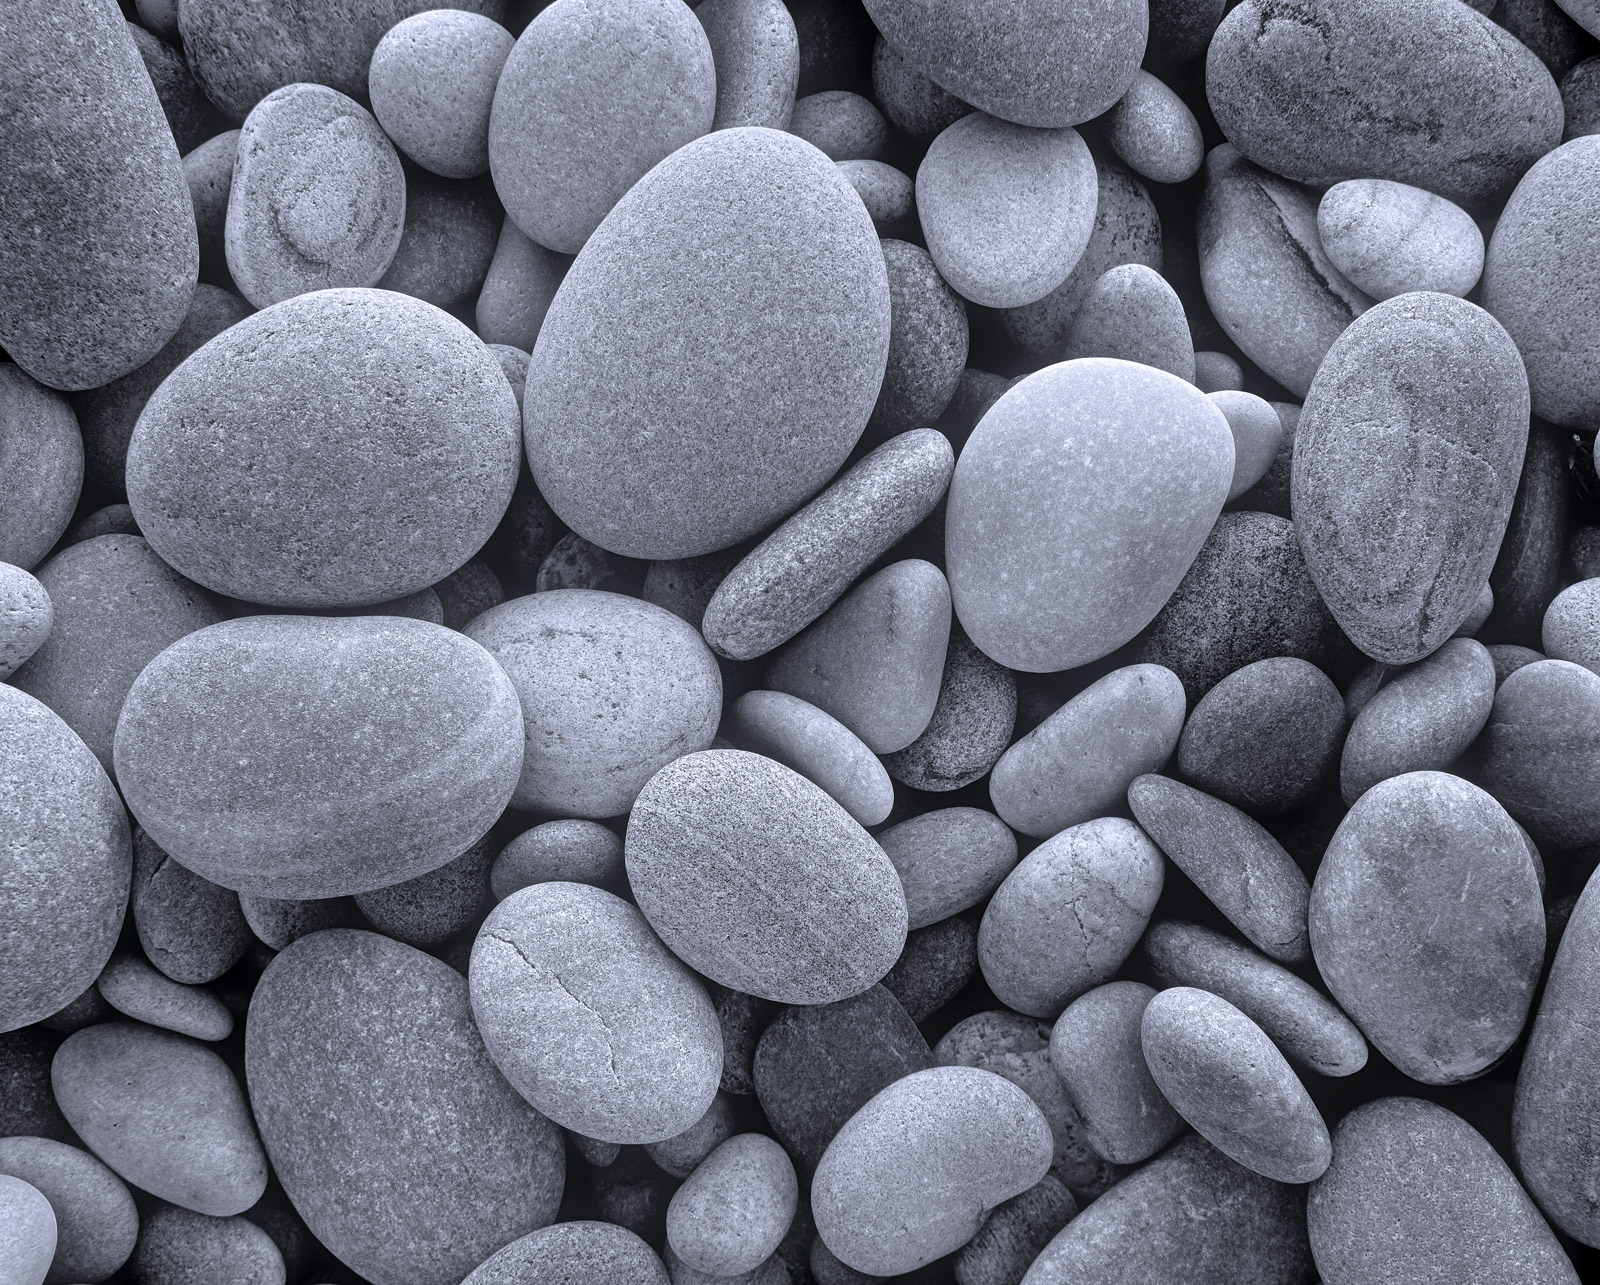 These smooth rounded pebbles have been cast into the upper regions of Findhorn's beach during a winter storm. They are...